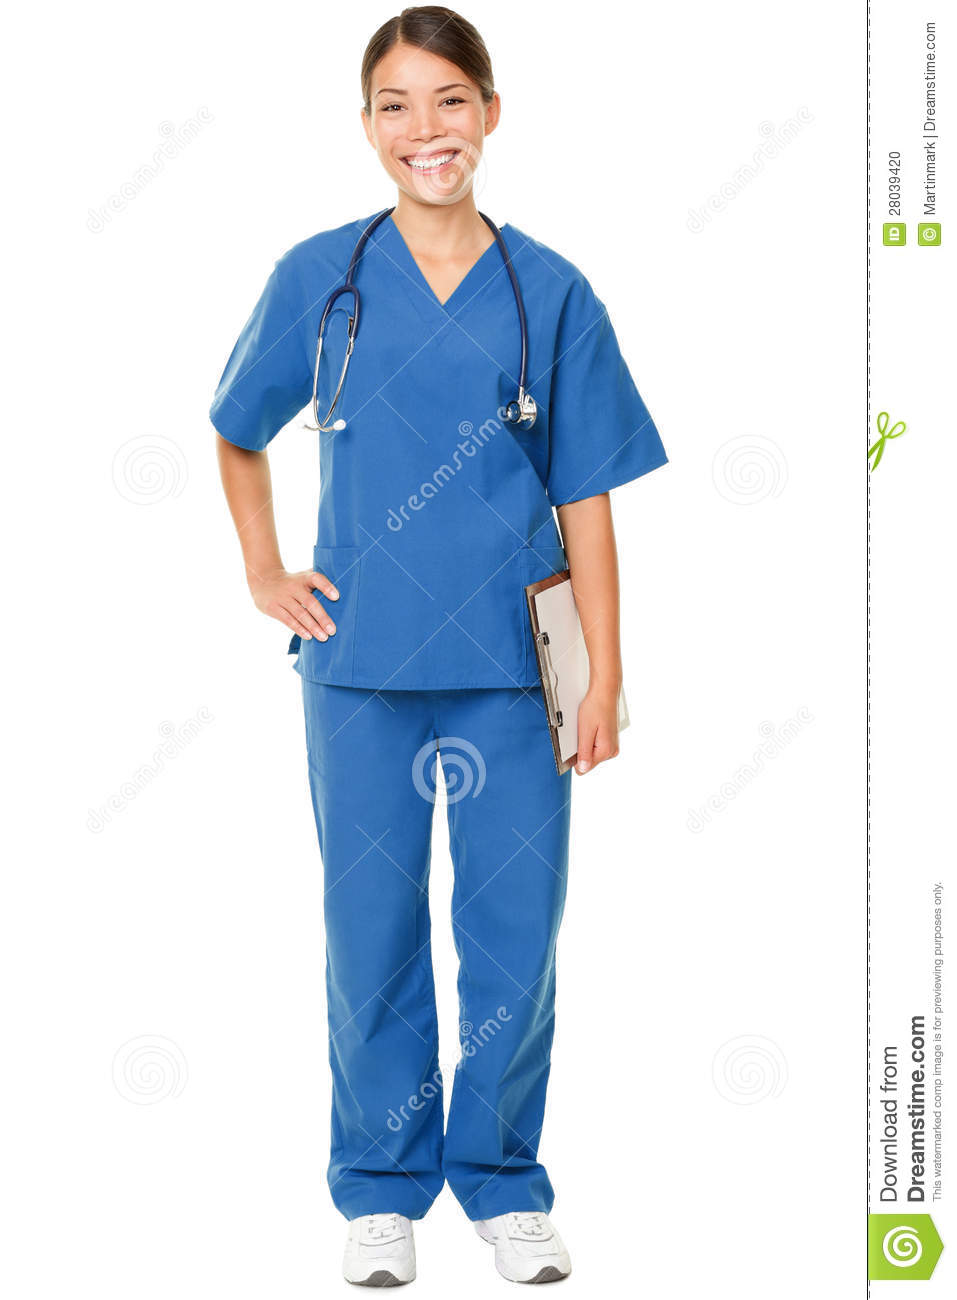 65cae2105fb Young Doctor In Blue Scrubs Stock Photo - Image of medical ...